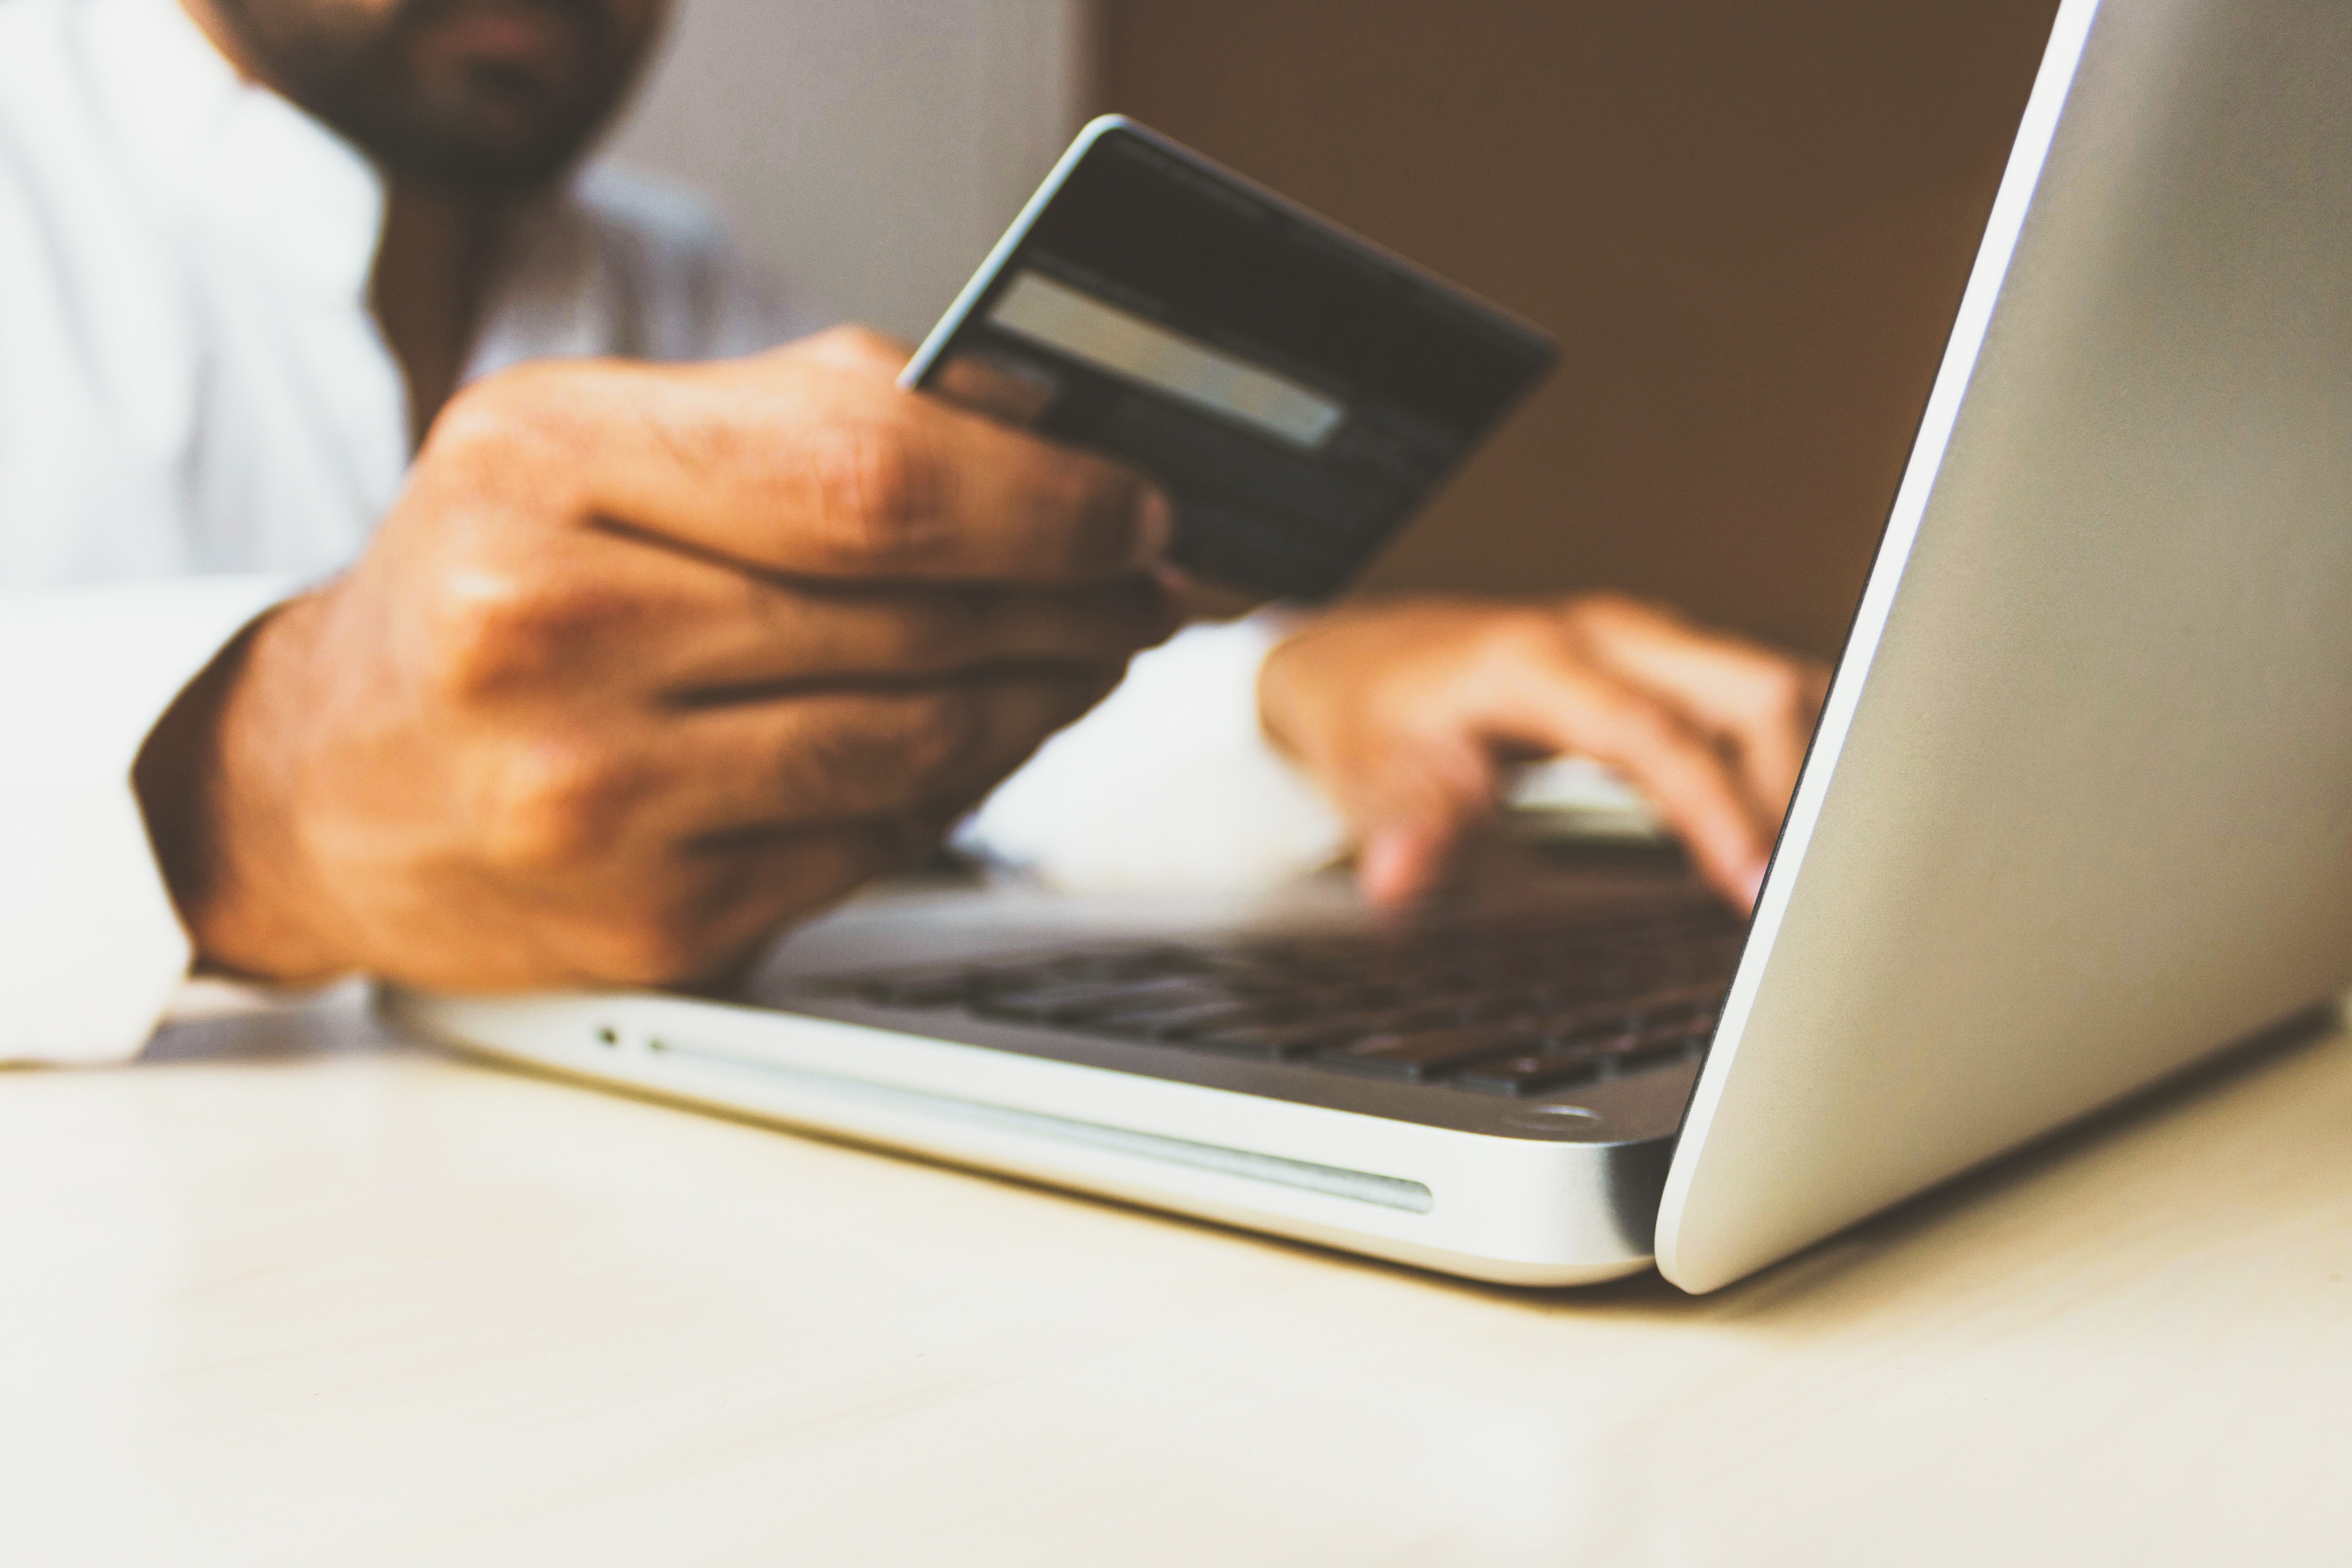 Secure Online Payment Options are a Must-Have for HOA Members